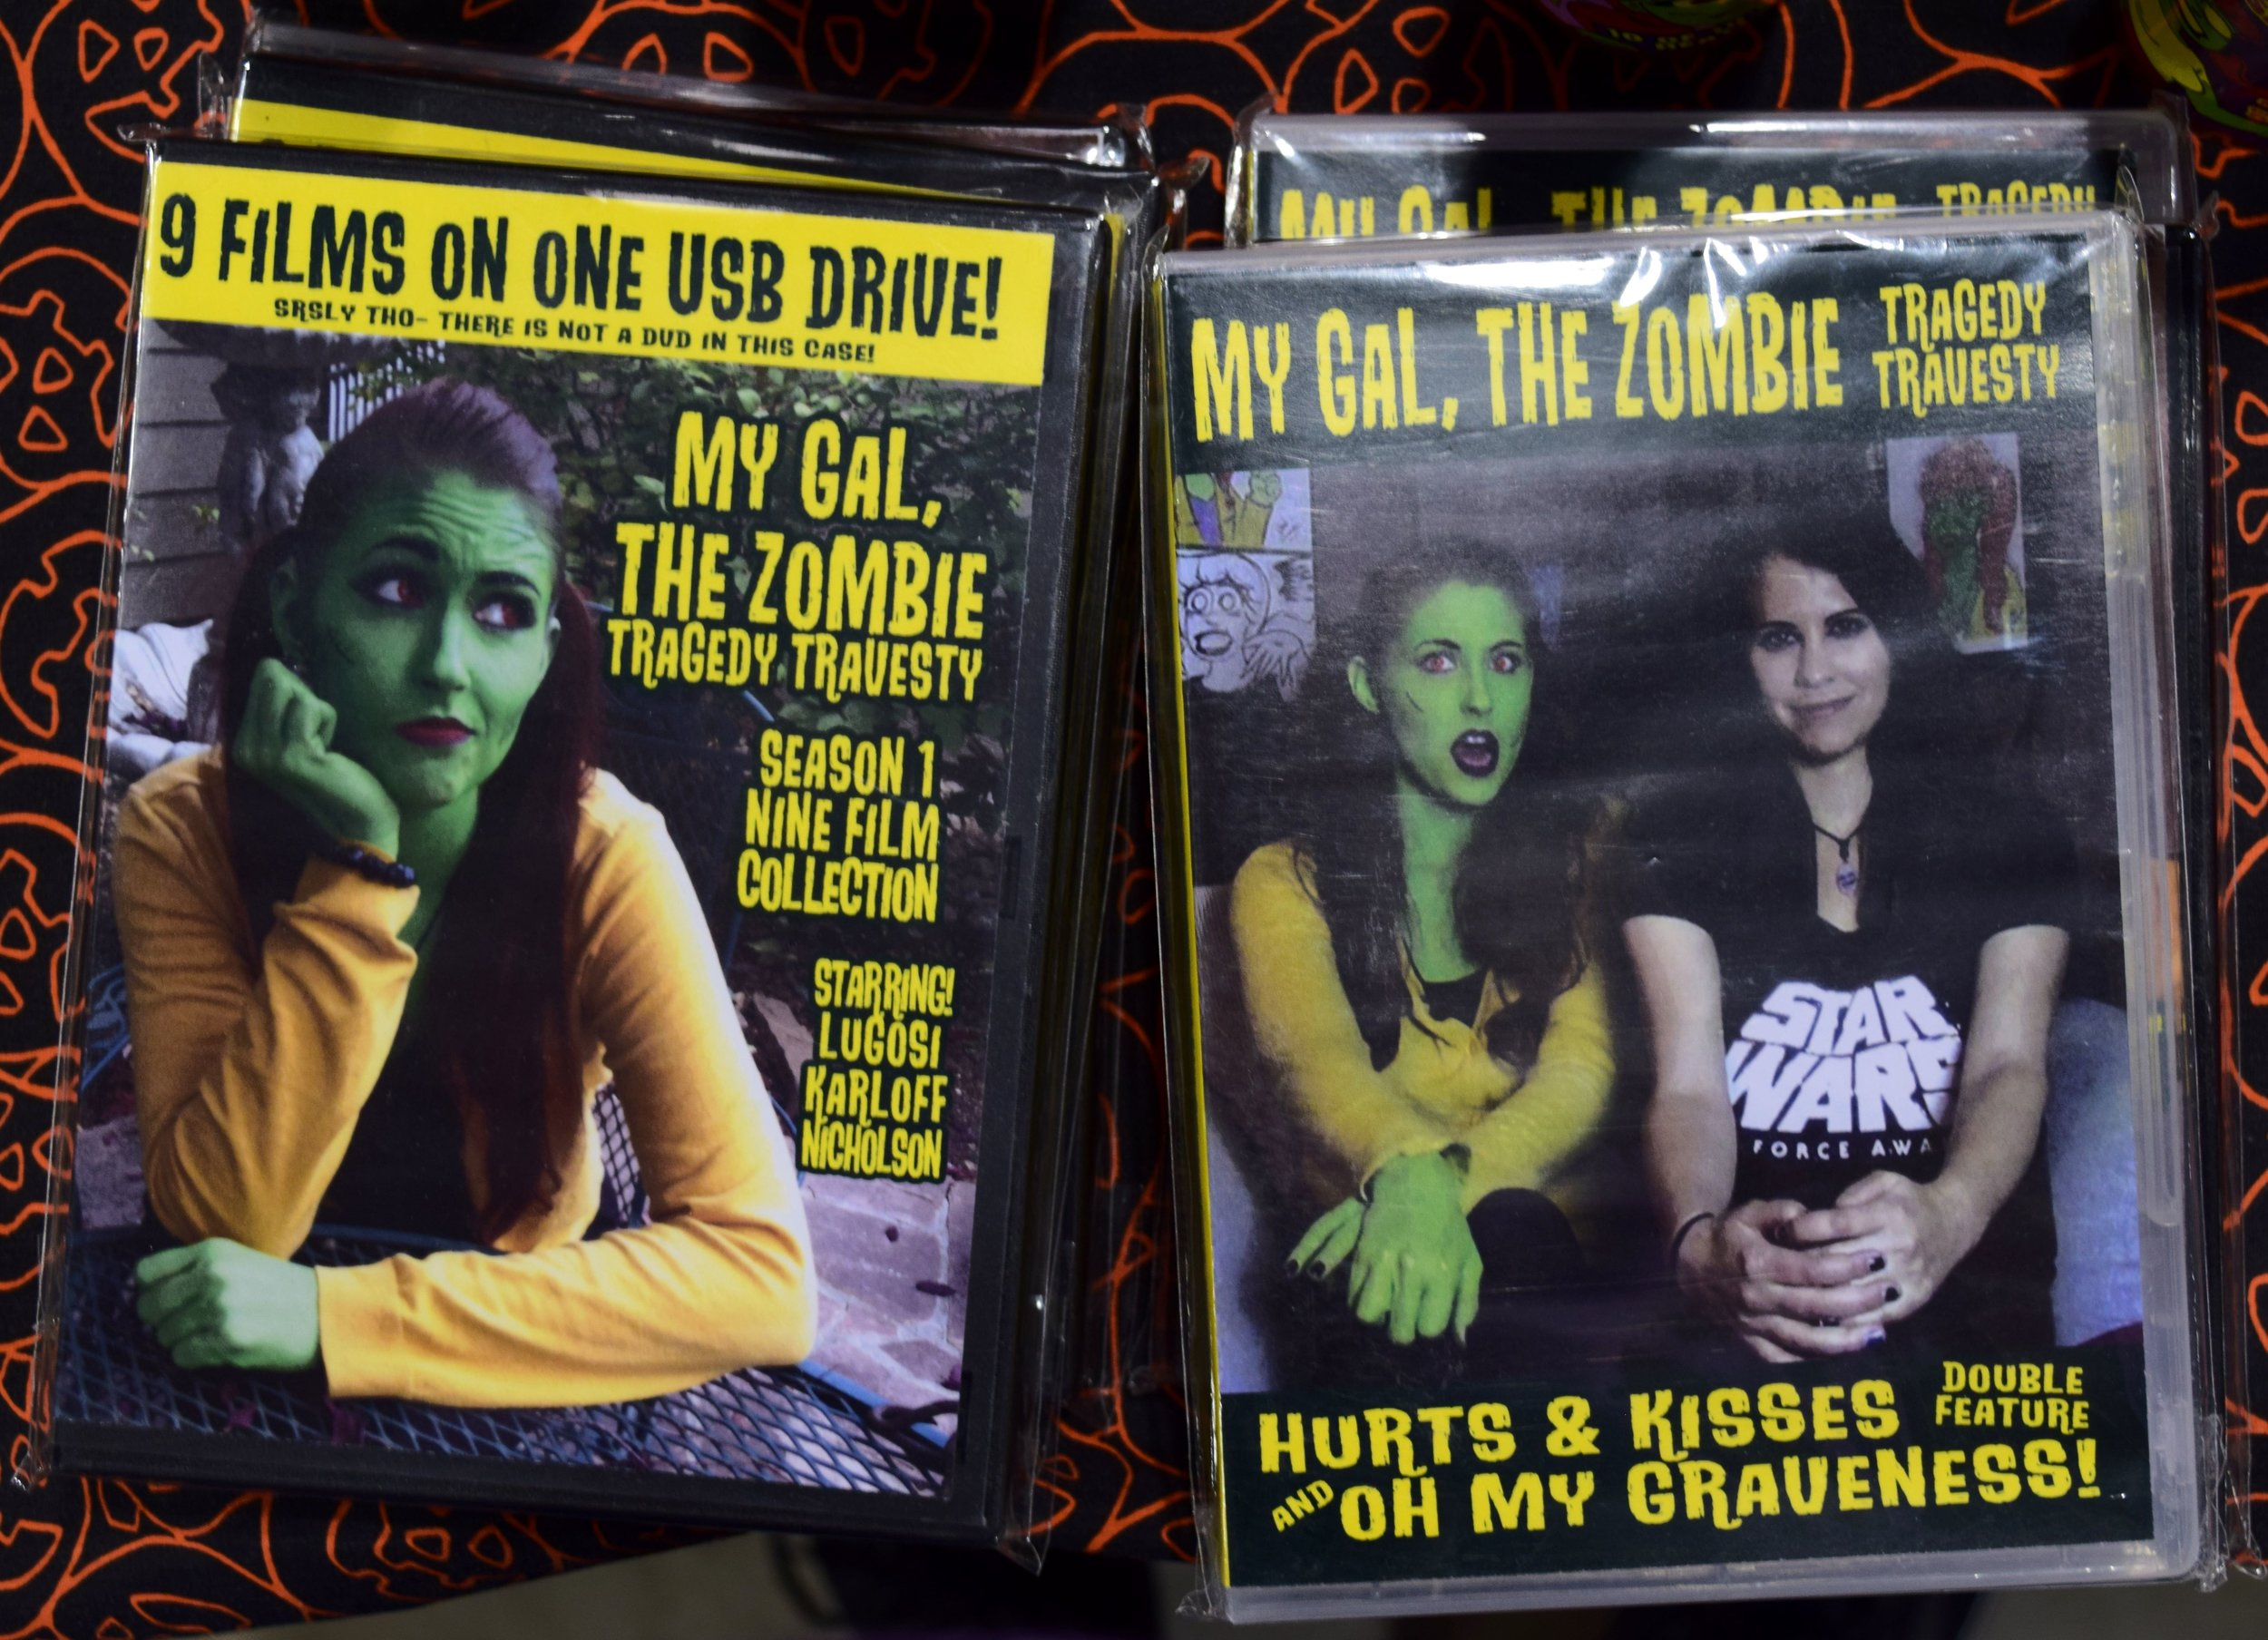 My Gal the Zombie DVDs at Denver Comic Con 2017.